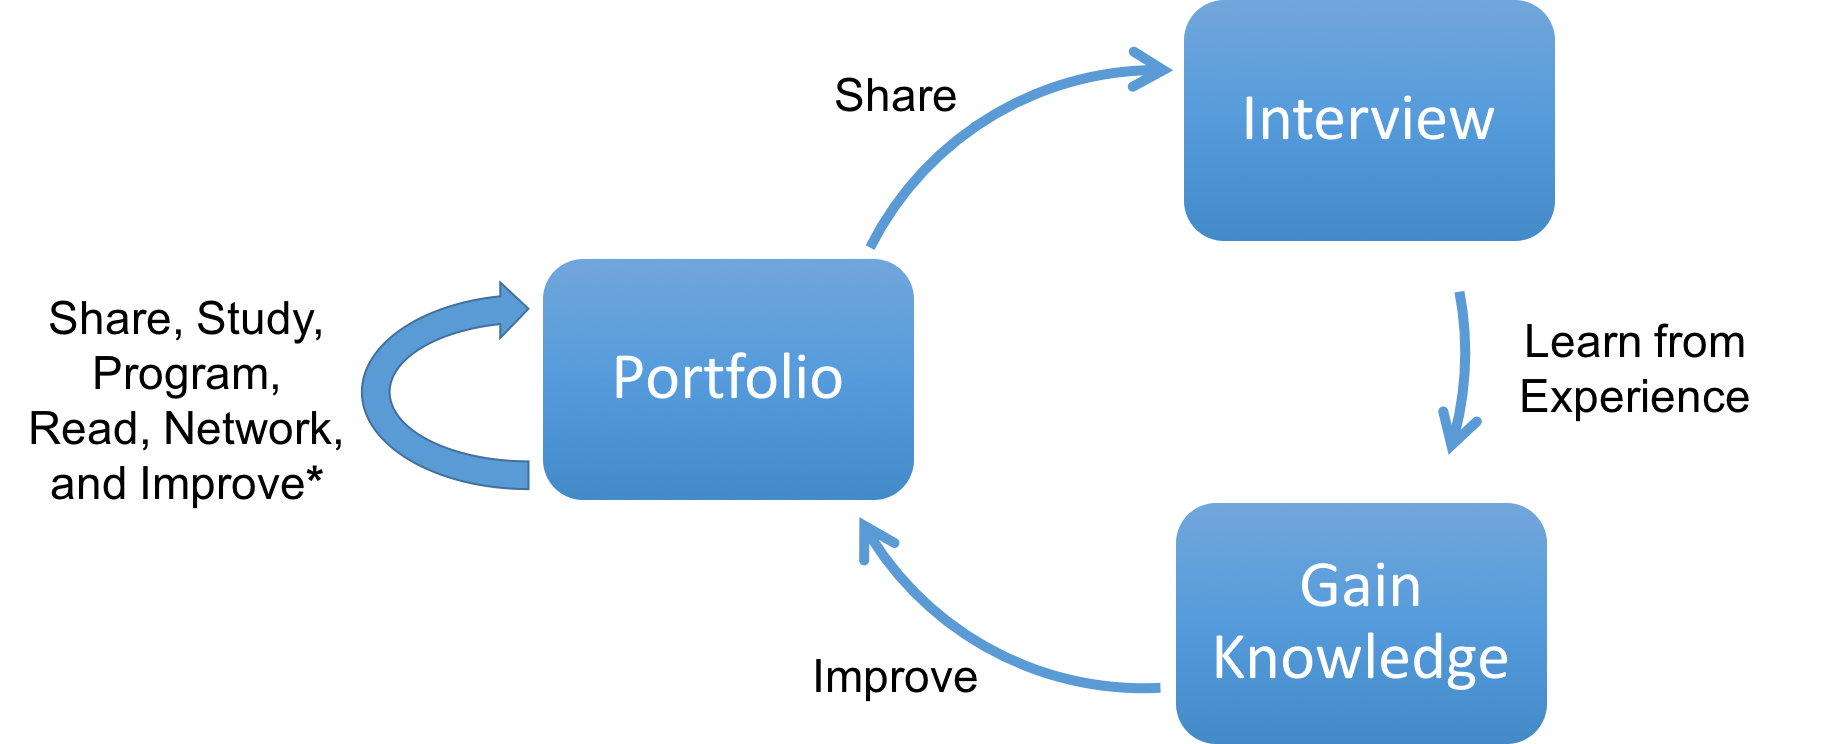 How to Build a Data Science Portfolio - Towards Data Science